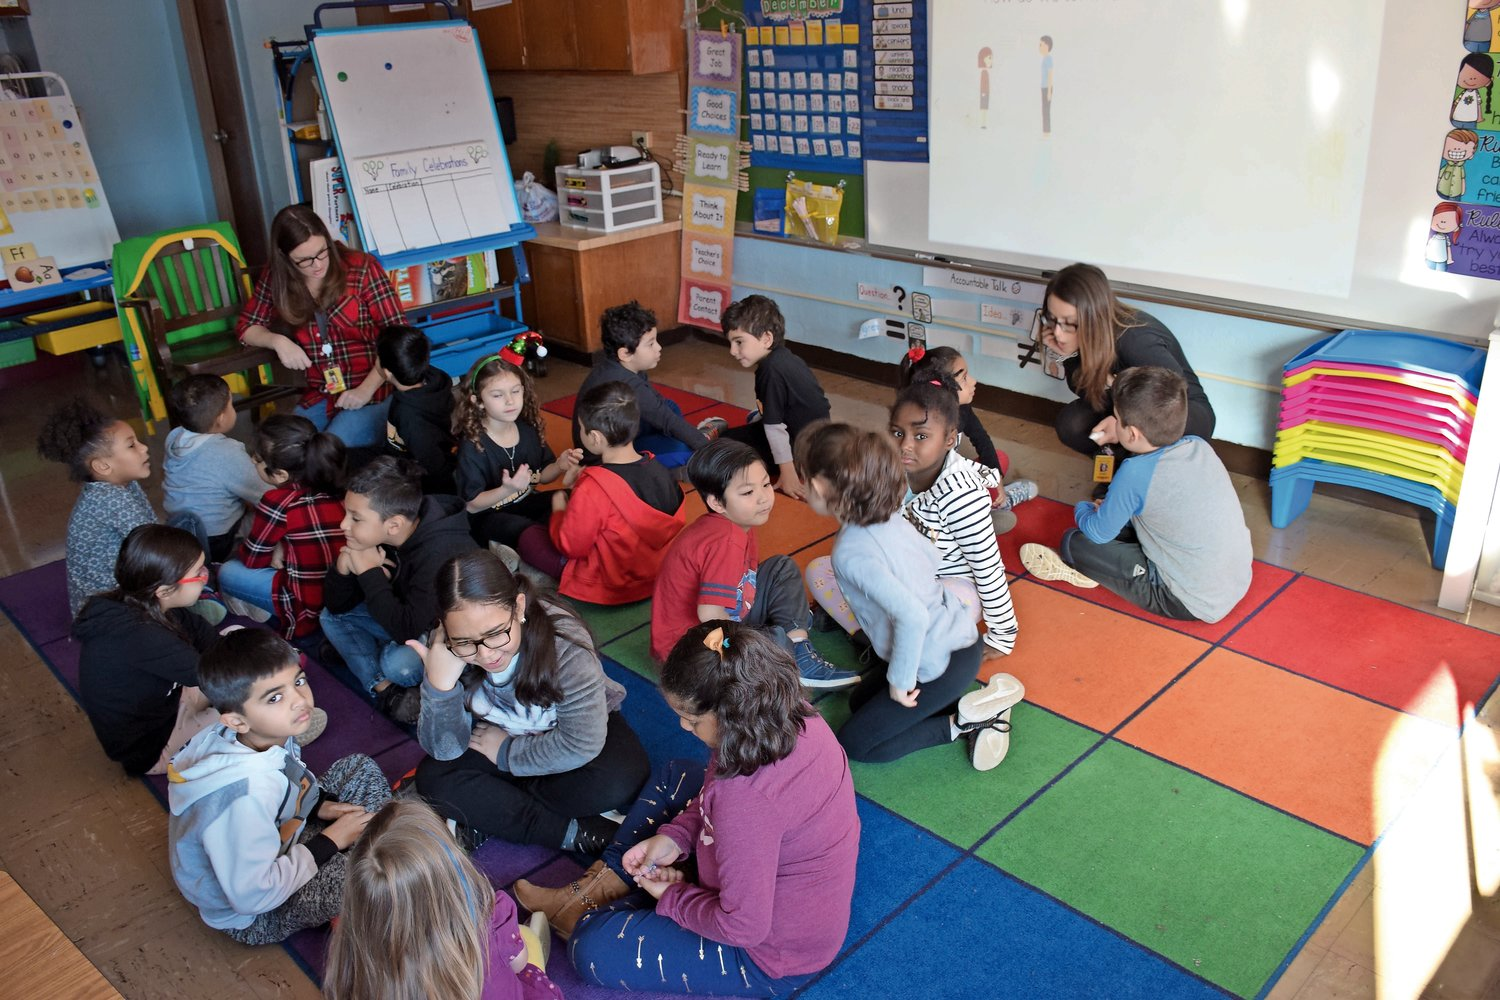 Virtual pen pals in West Hempstead | Herald Community